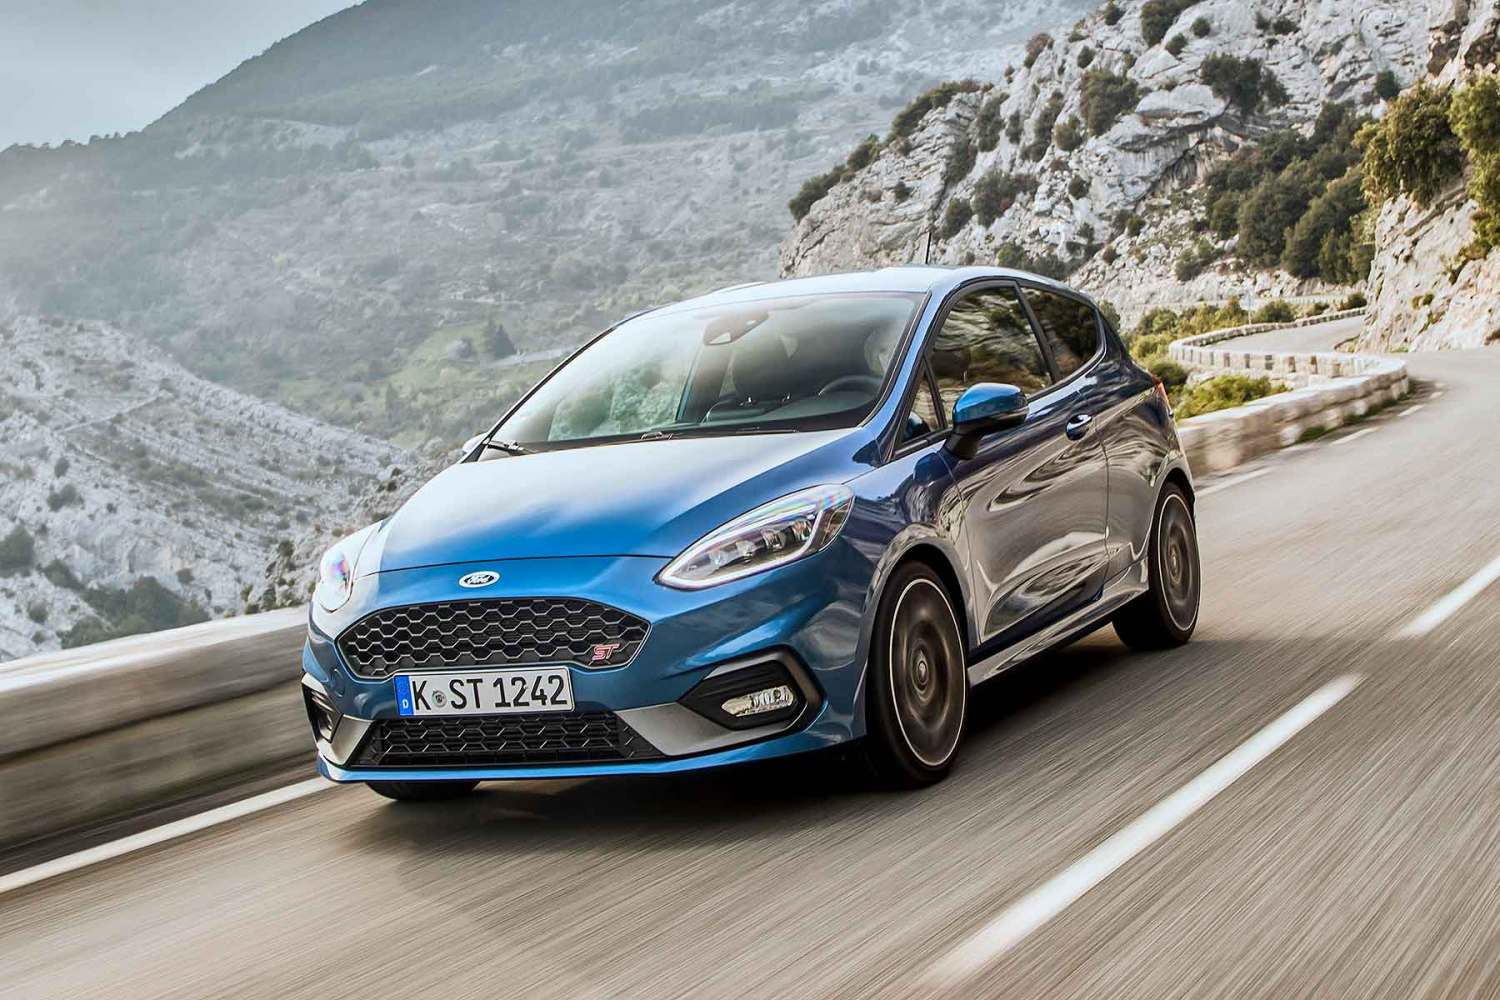 2018 Ford Fiesta ST in Performance Blue